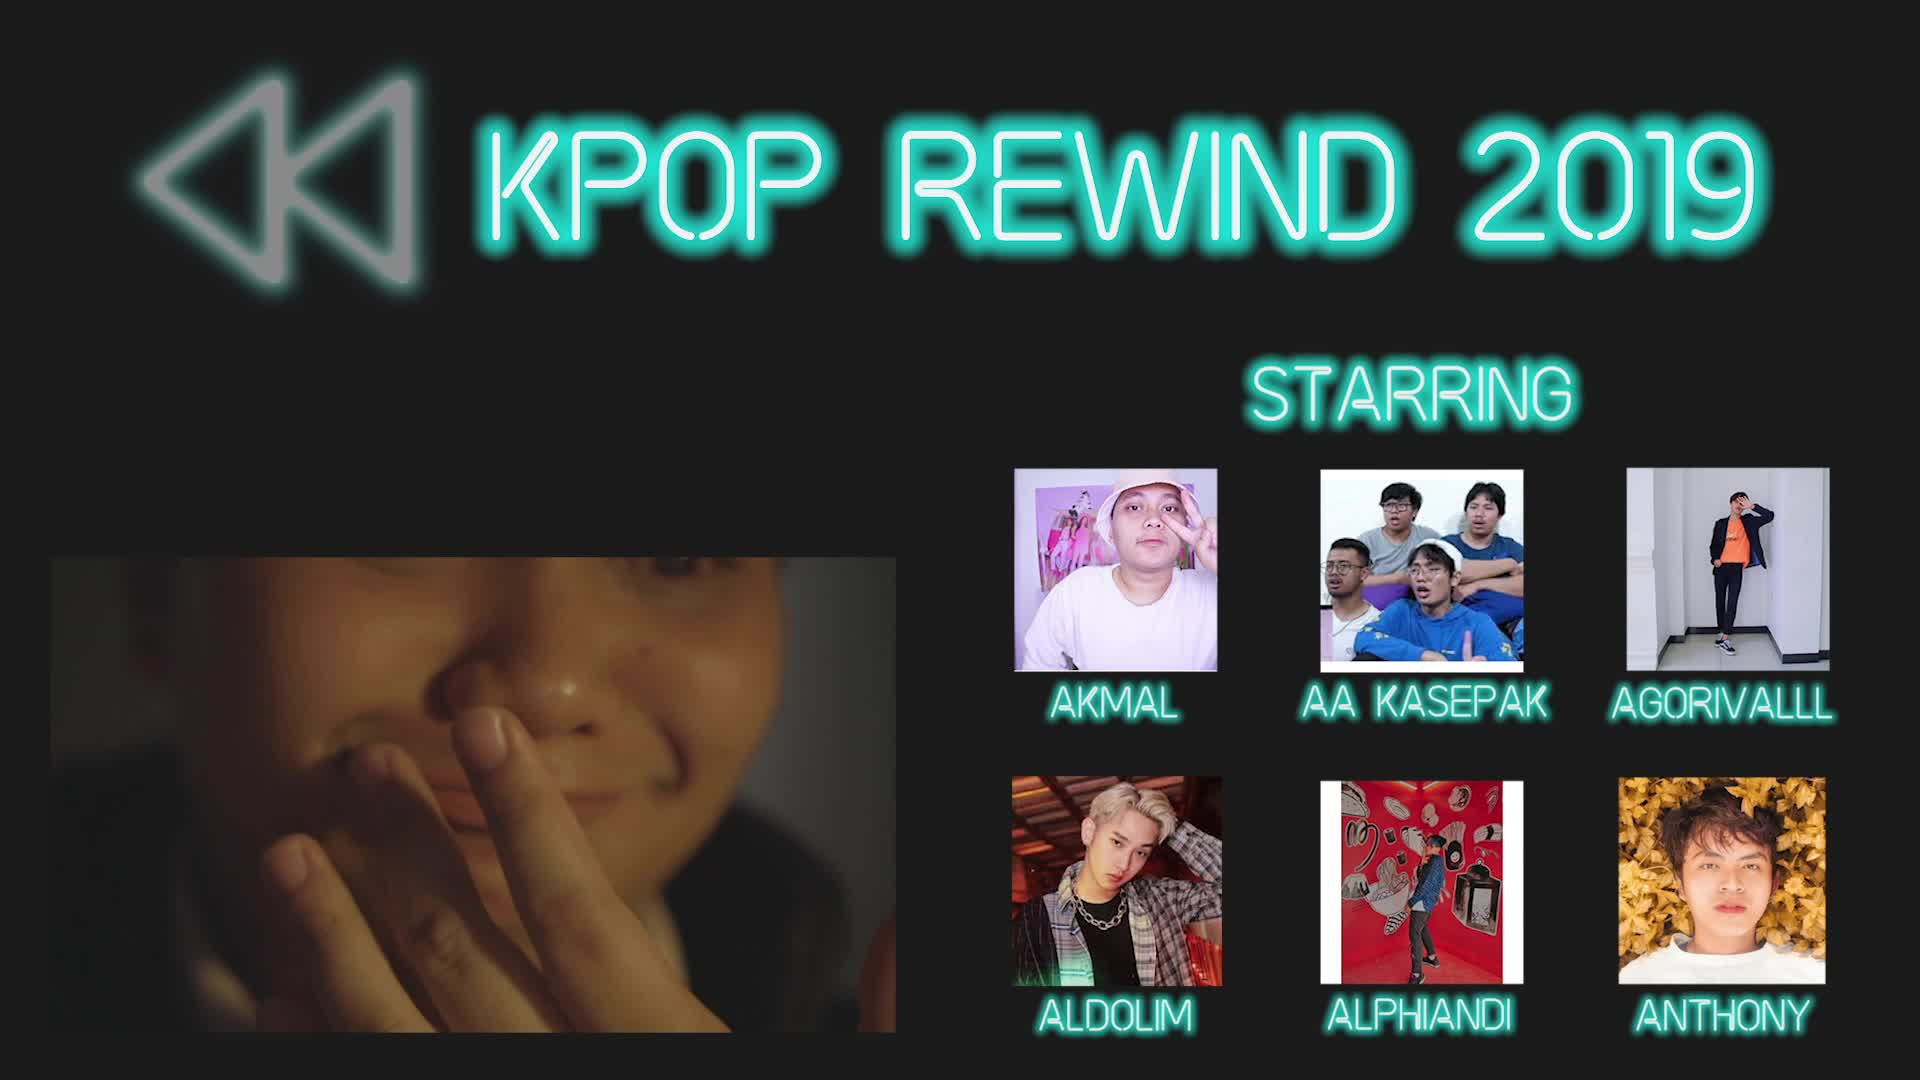 [FULL] 2019 KPOP REWIND INDONESIA